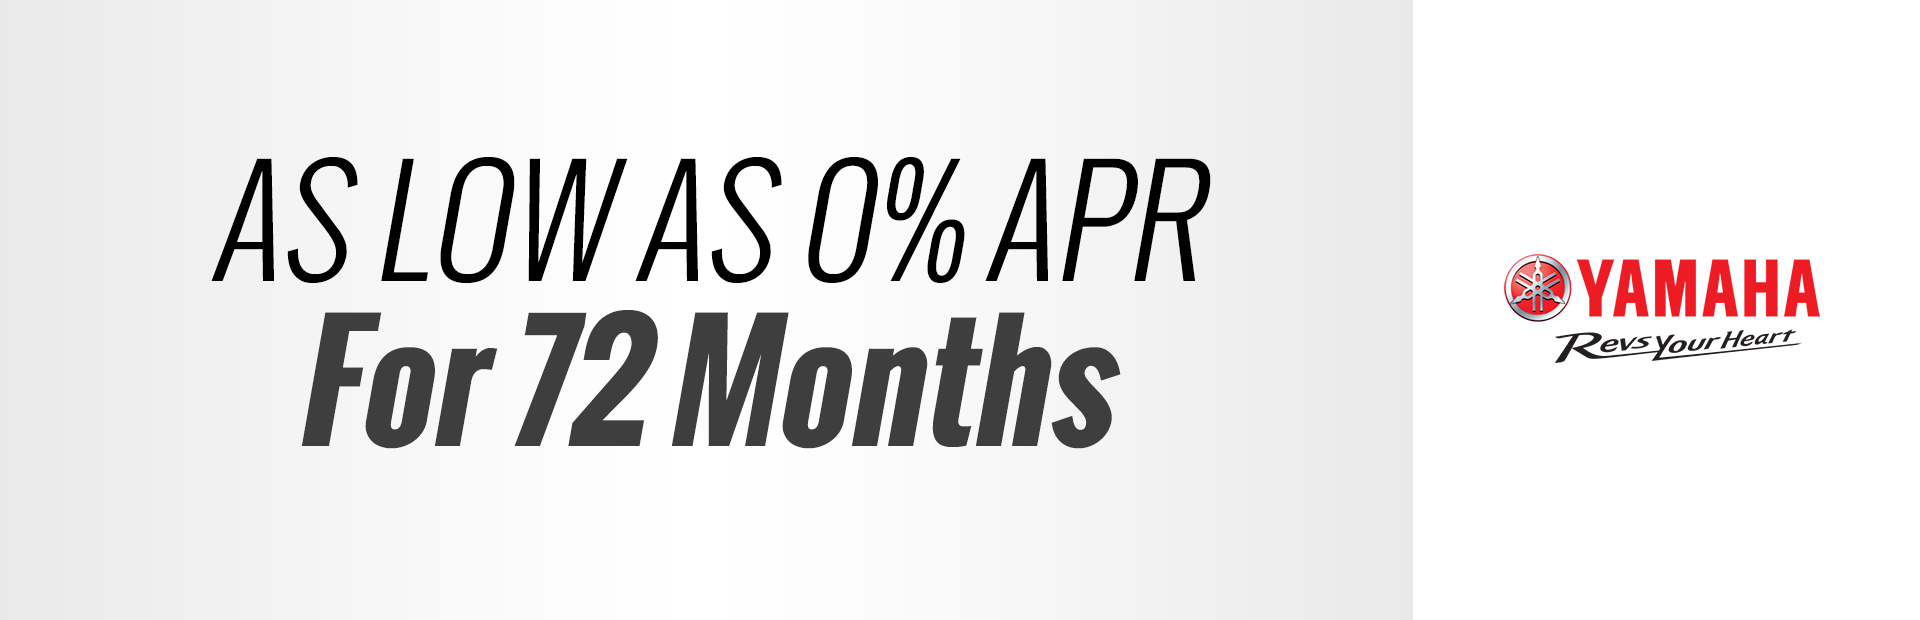 Yamaha: As Low As 0% APR for 72 months